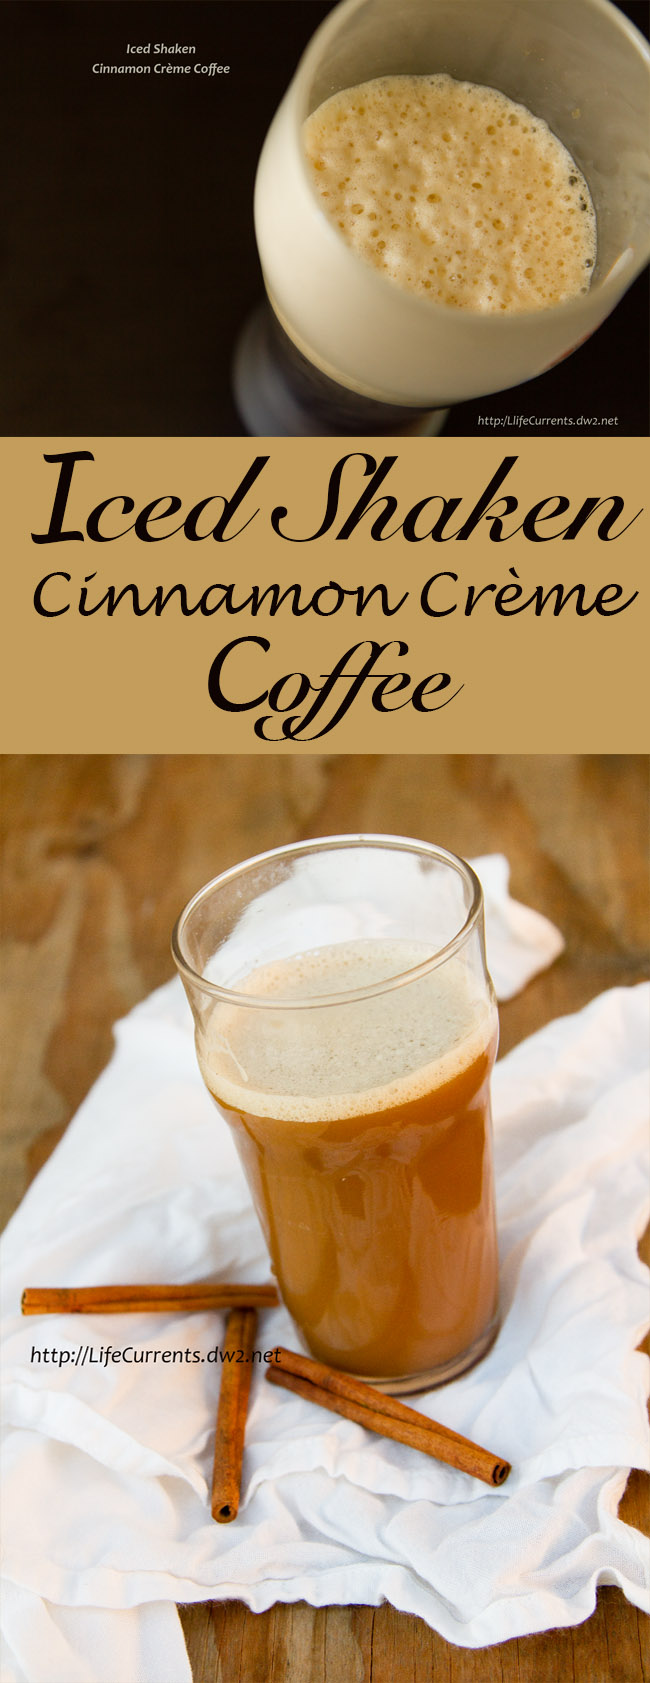 Iced Shaken Cinnamon Crème Coffee Recipe long pin for pinterest with two images and a title